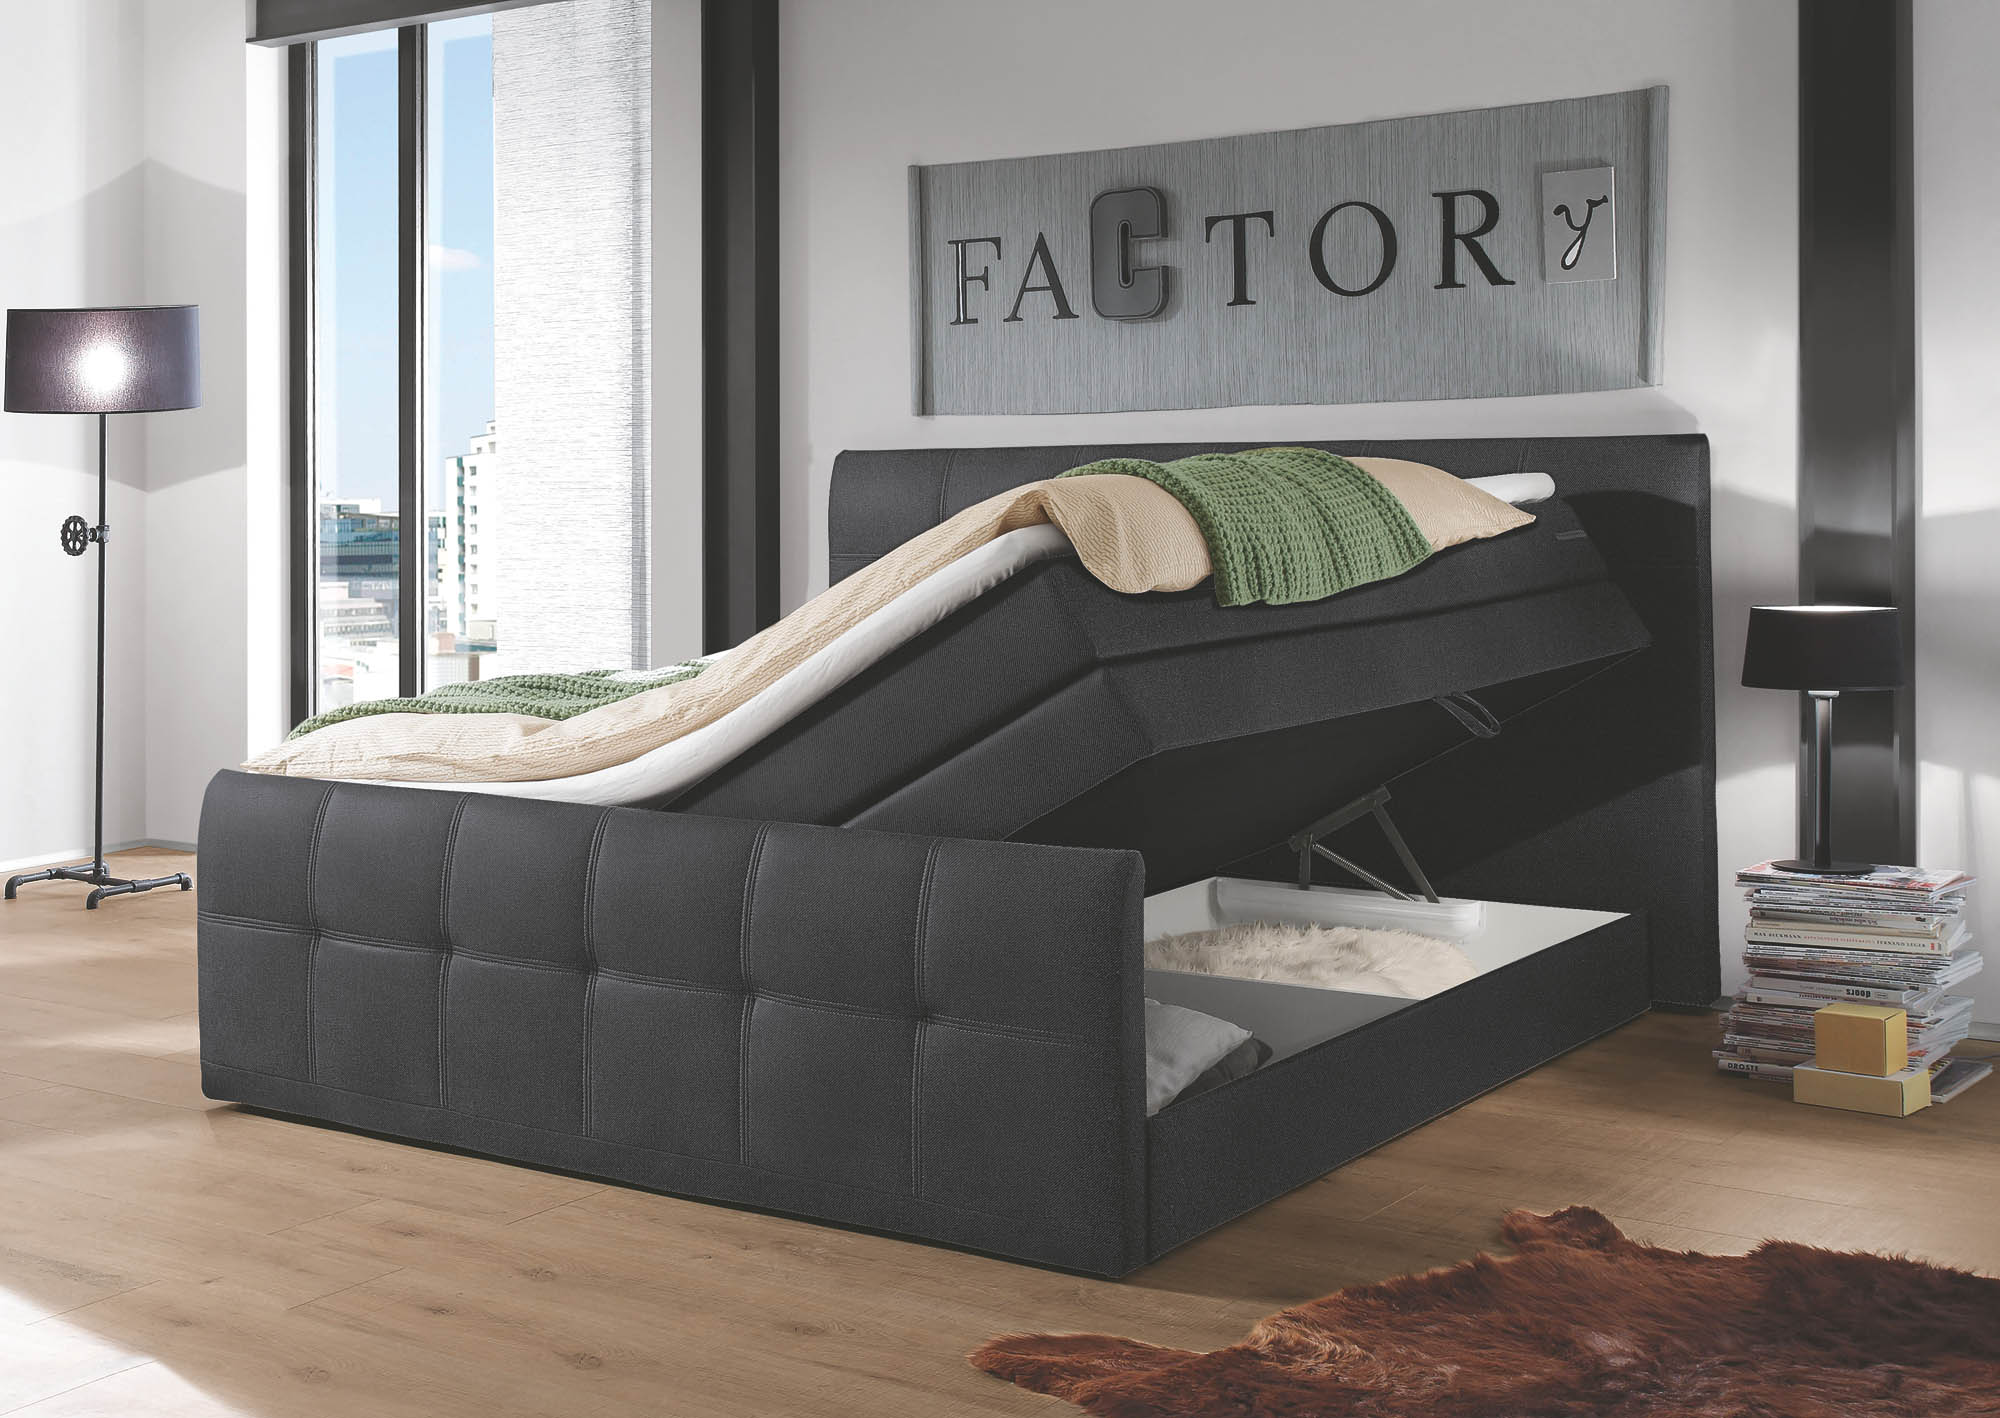 sacramento boxspringbett 180x200 inkl topper mit. Black Bedroom Furniture Sets. Home Design Ideas